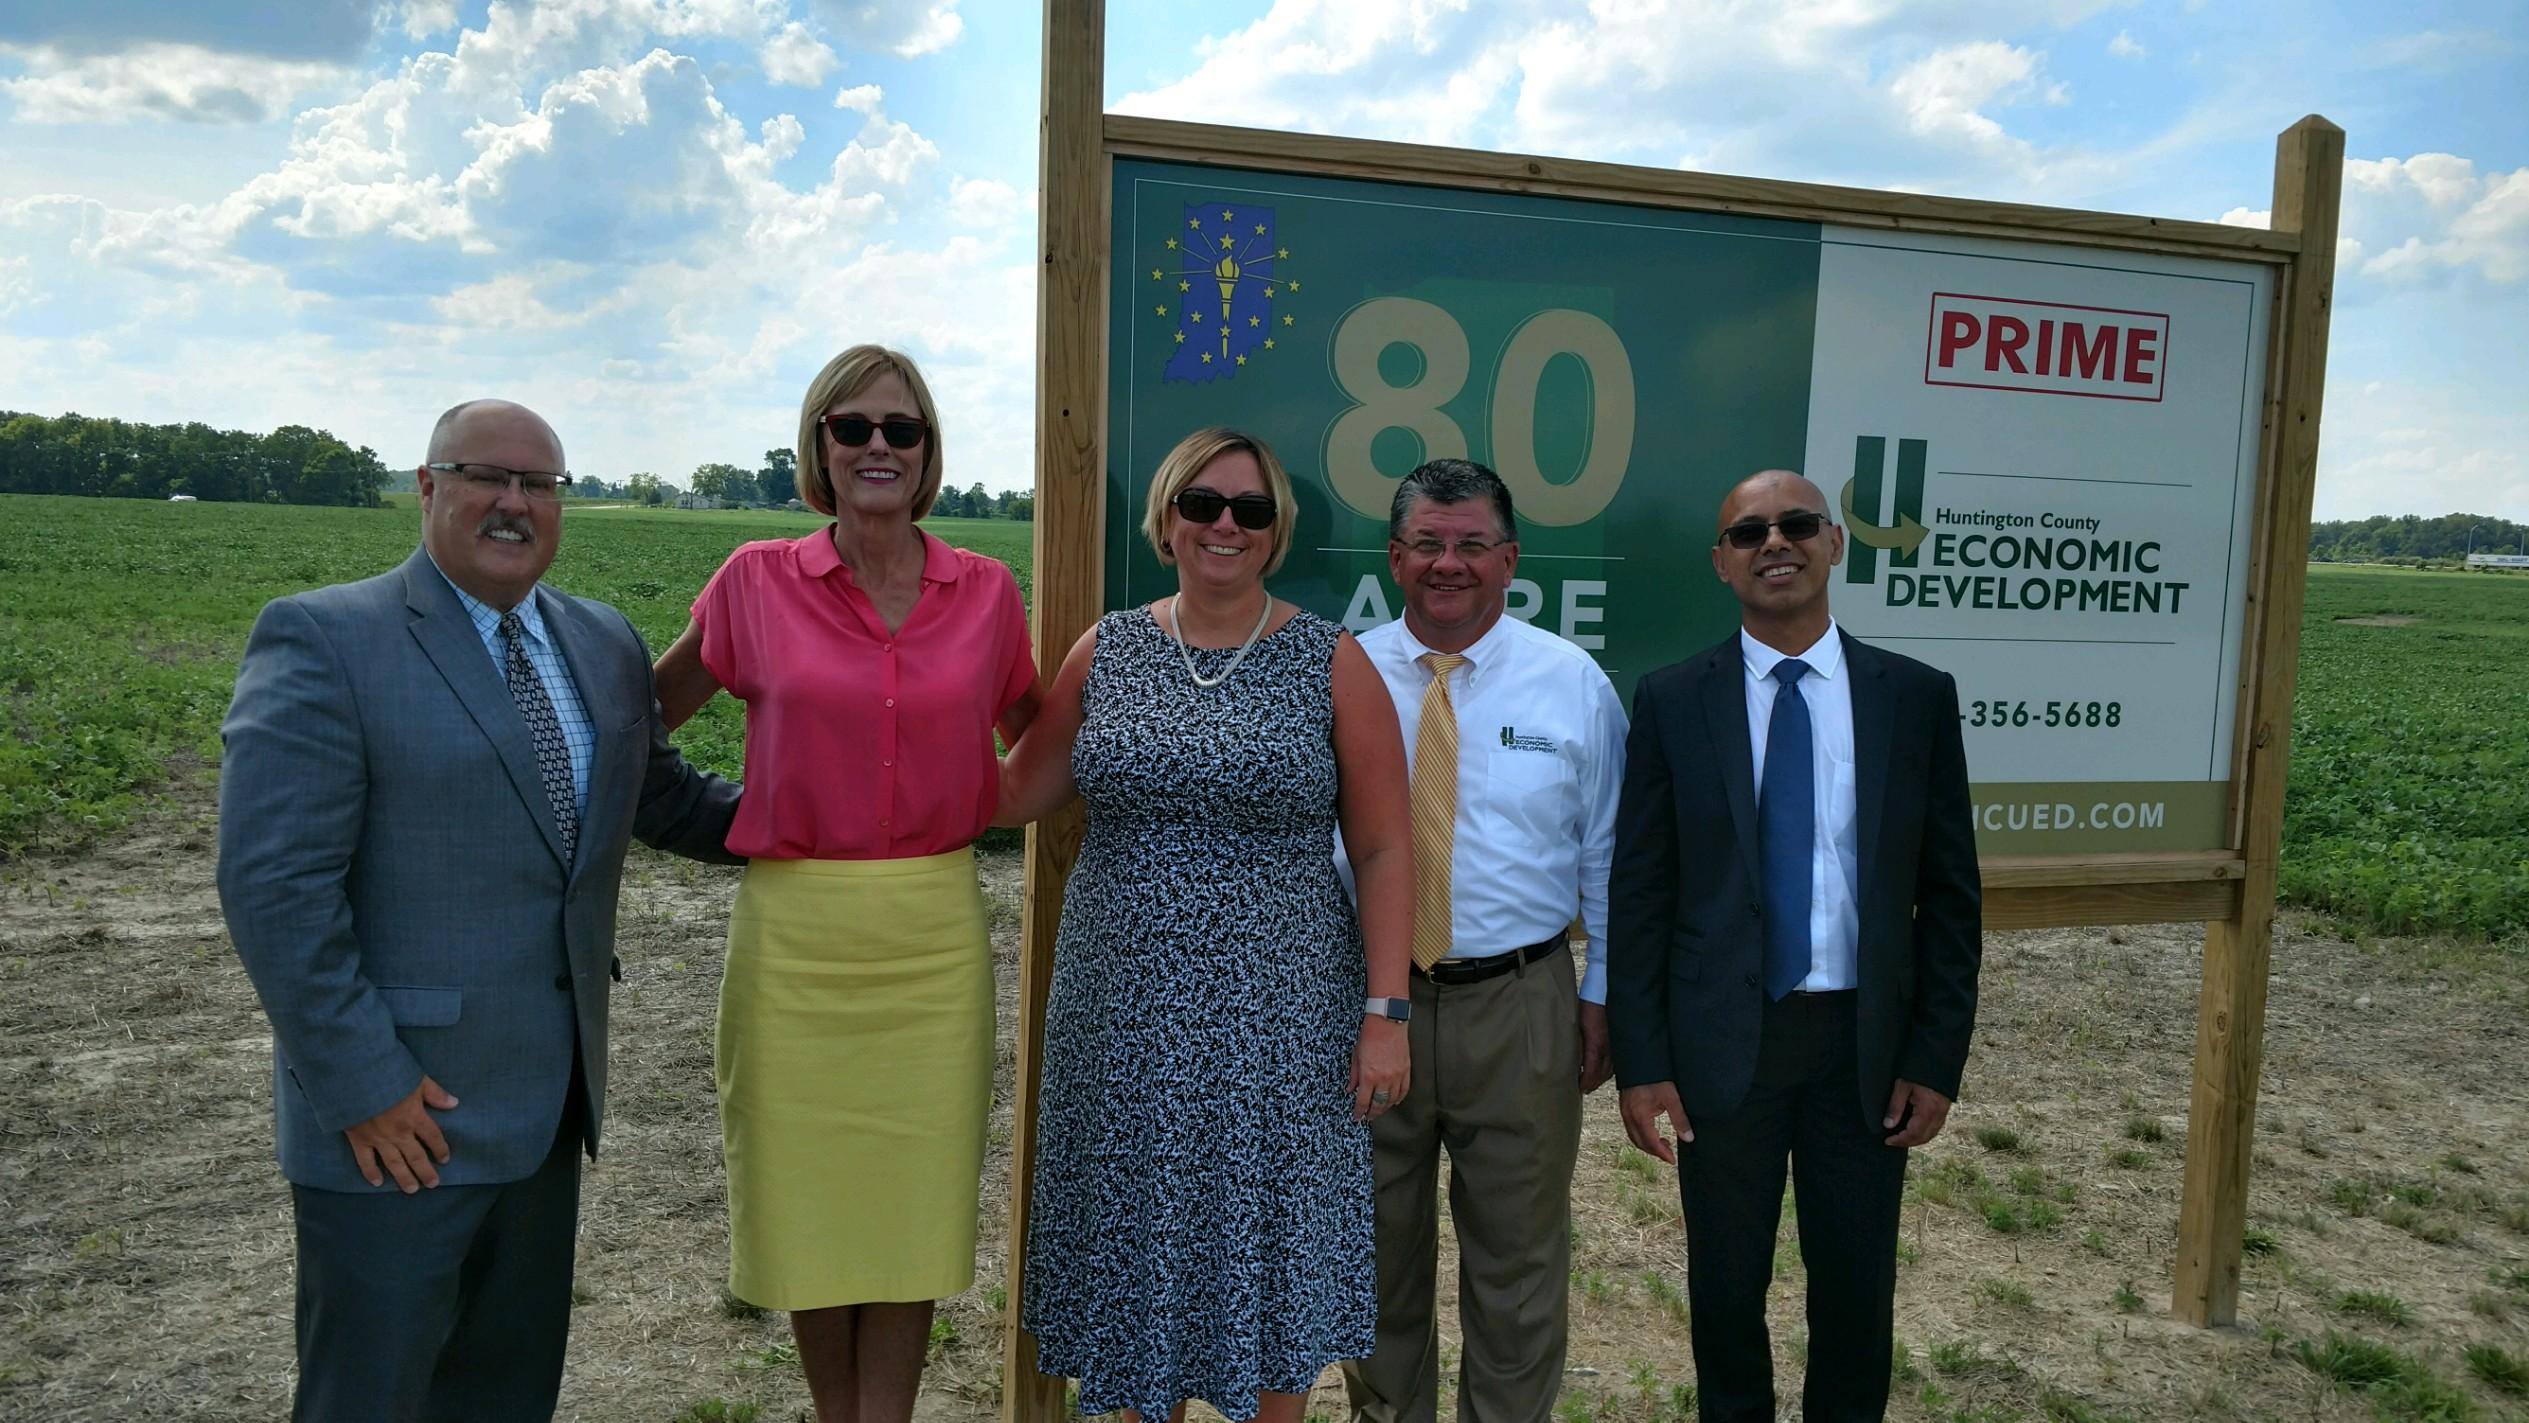 Brian Snyder, Indiana Lt. Governor Suzanne Crouch, OCRA executive director Jodi Golden, Huntington County EDC director Mark Wickersham and Sanjay Shukla of 528 Financial.